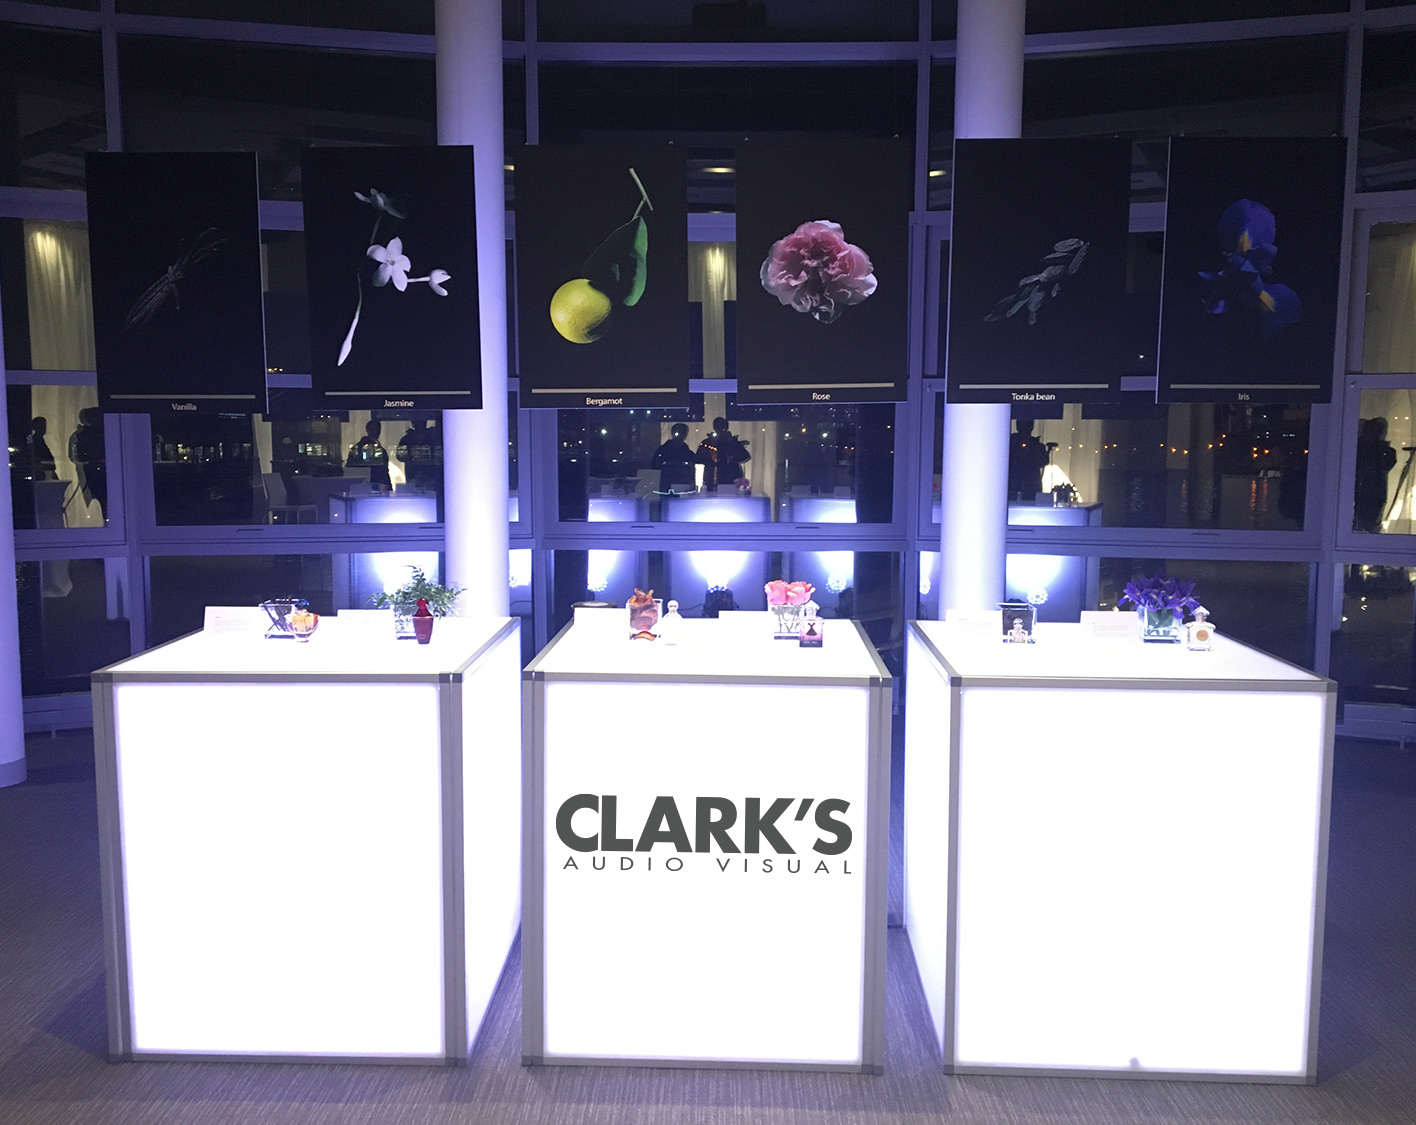 Clark's Audio Visual Cubes